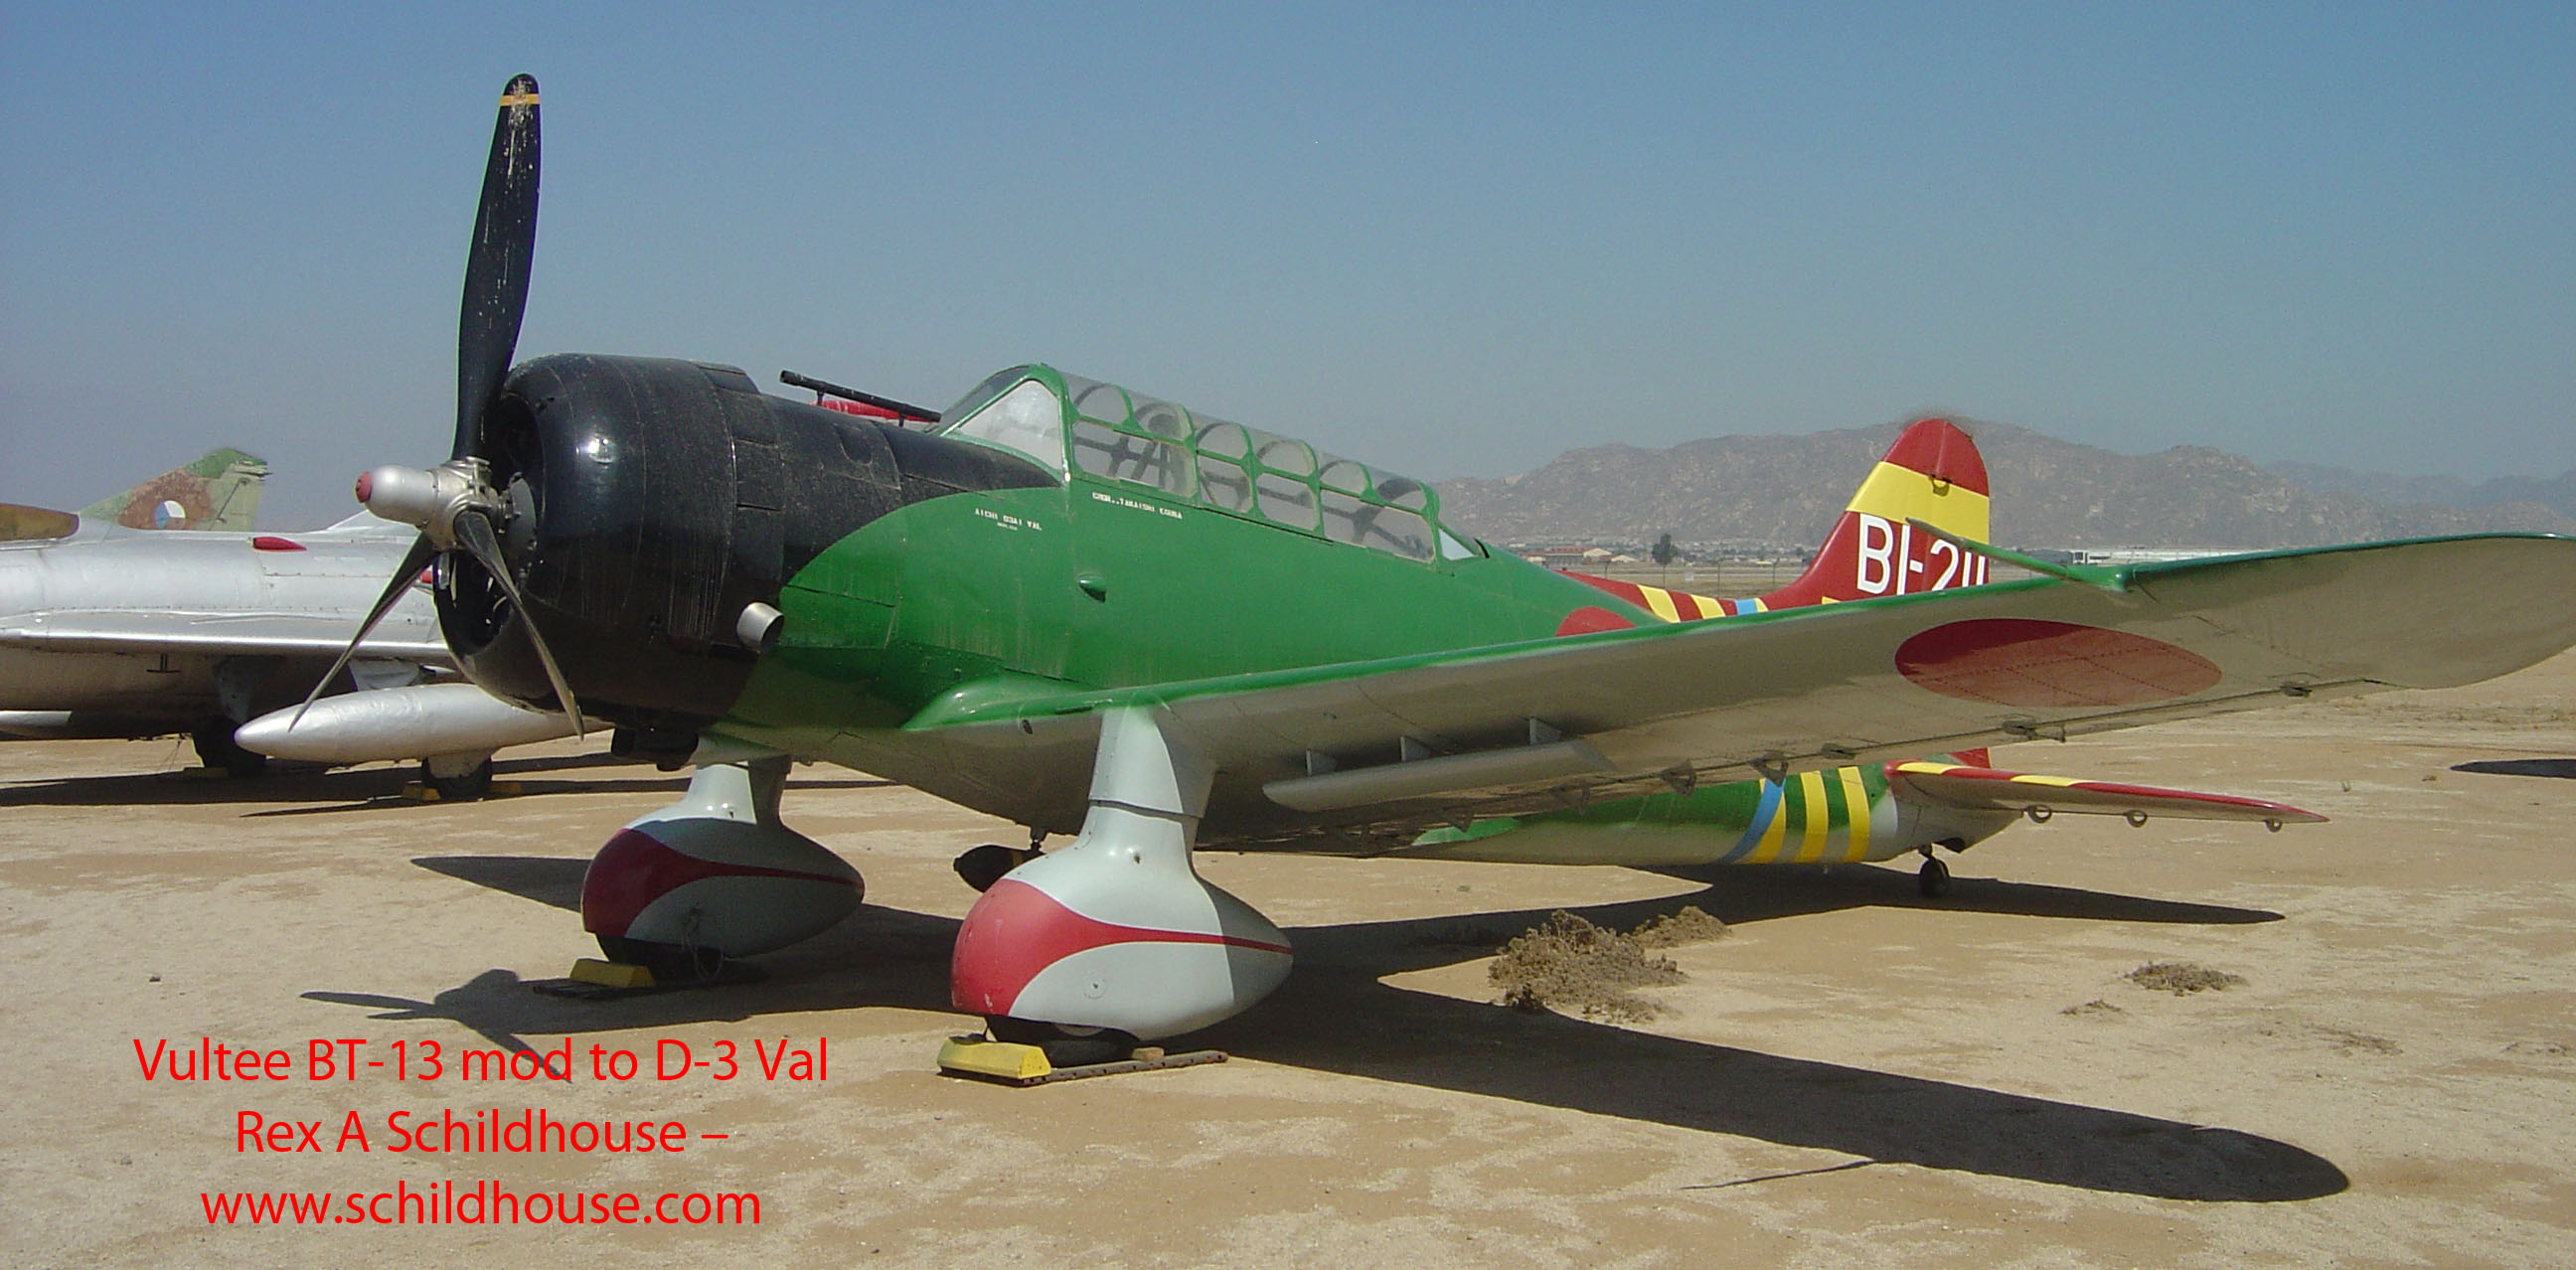 Vultee BT-13 Mod to D-3 Val